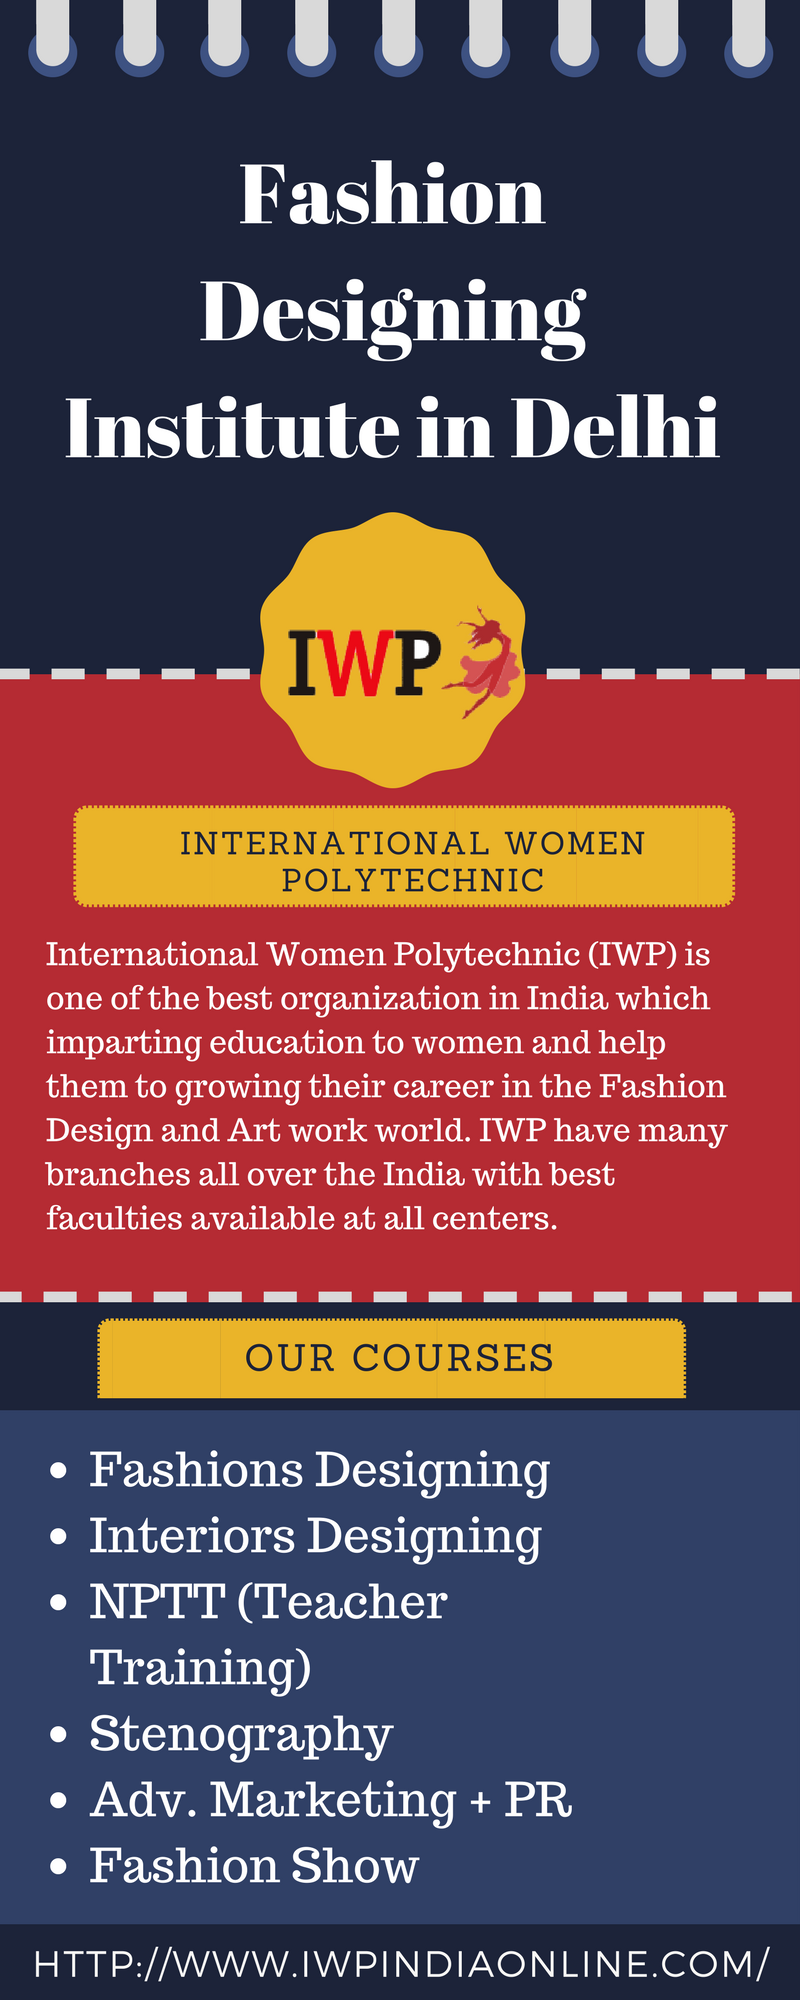 For Those Who Are Looking For The Fashion Designing Institute In Delhi Make Your Visit At International Wome With Images Fashion Design Fashion Designing Institute Design